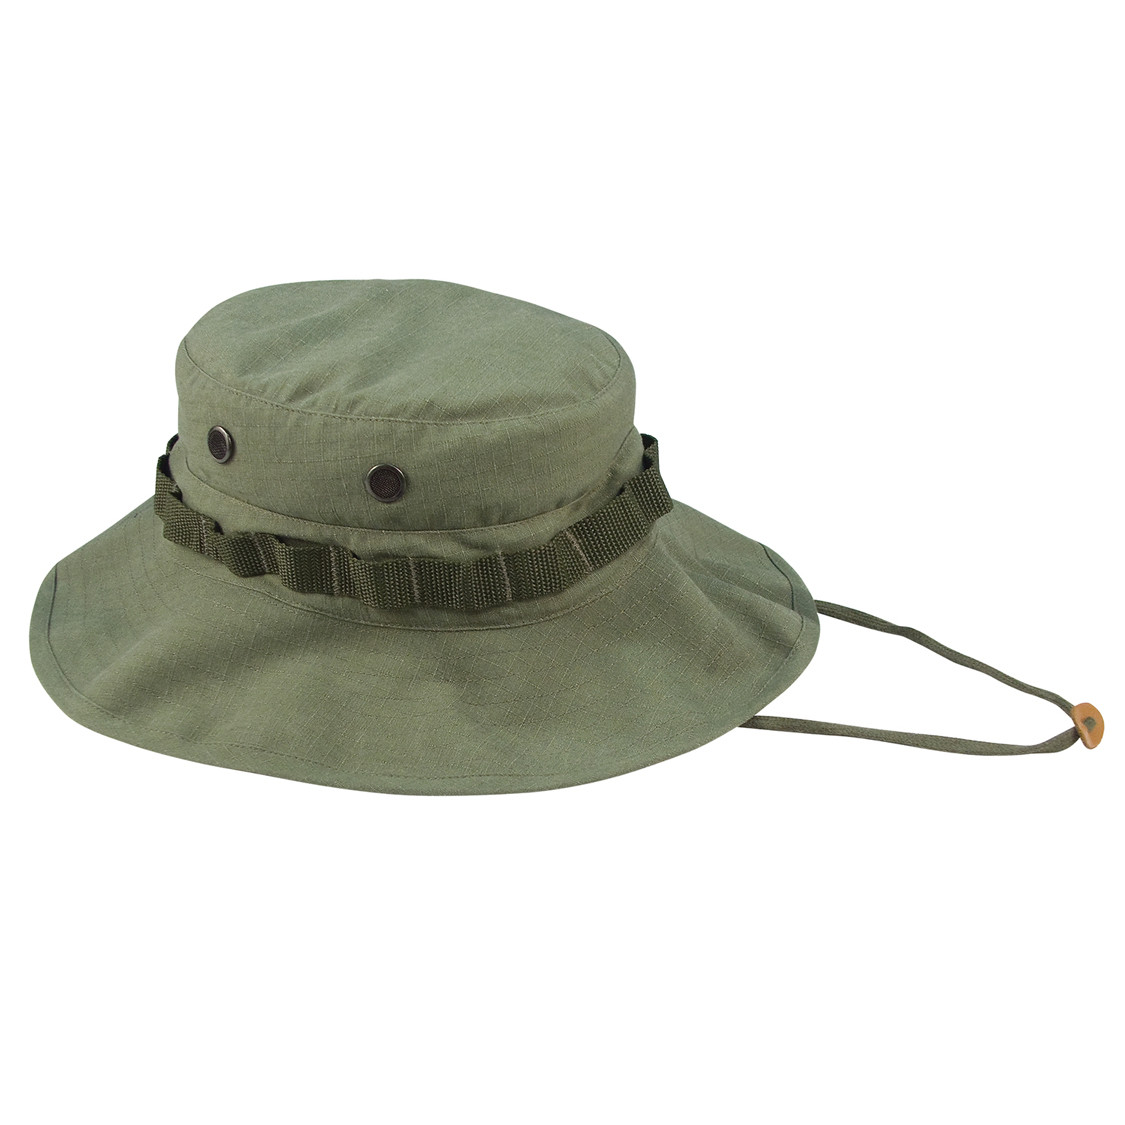 ea3477c6ac71d Shop Vintage Vietnam Era Boonie Hat - Fatigues Army Navy